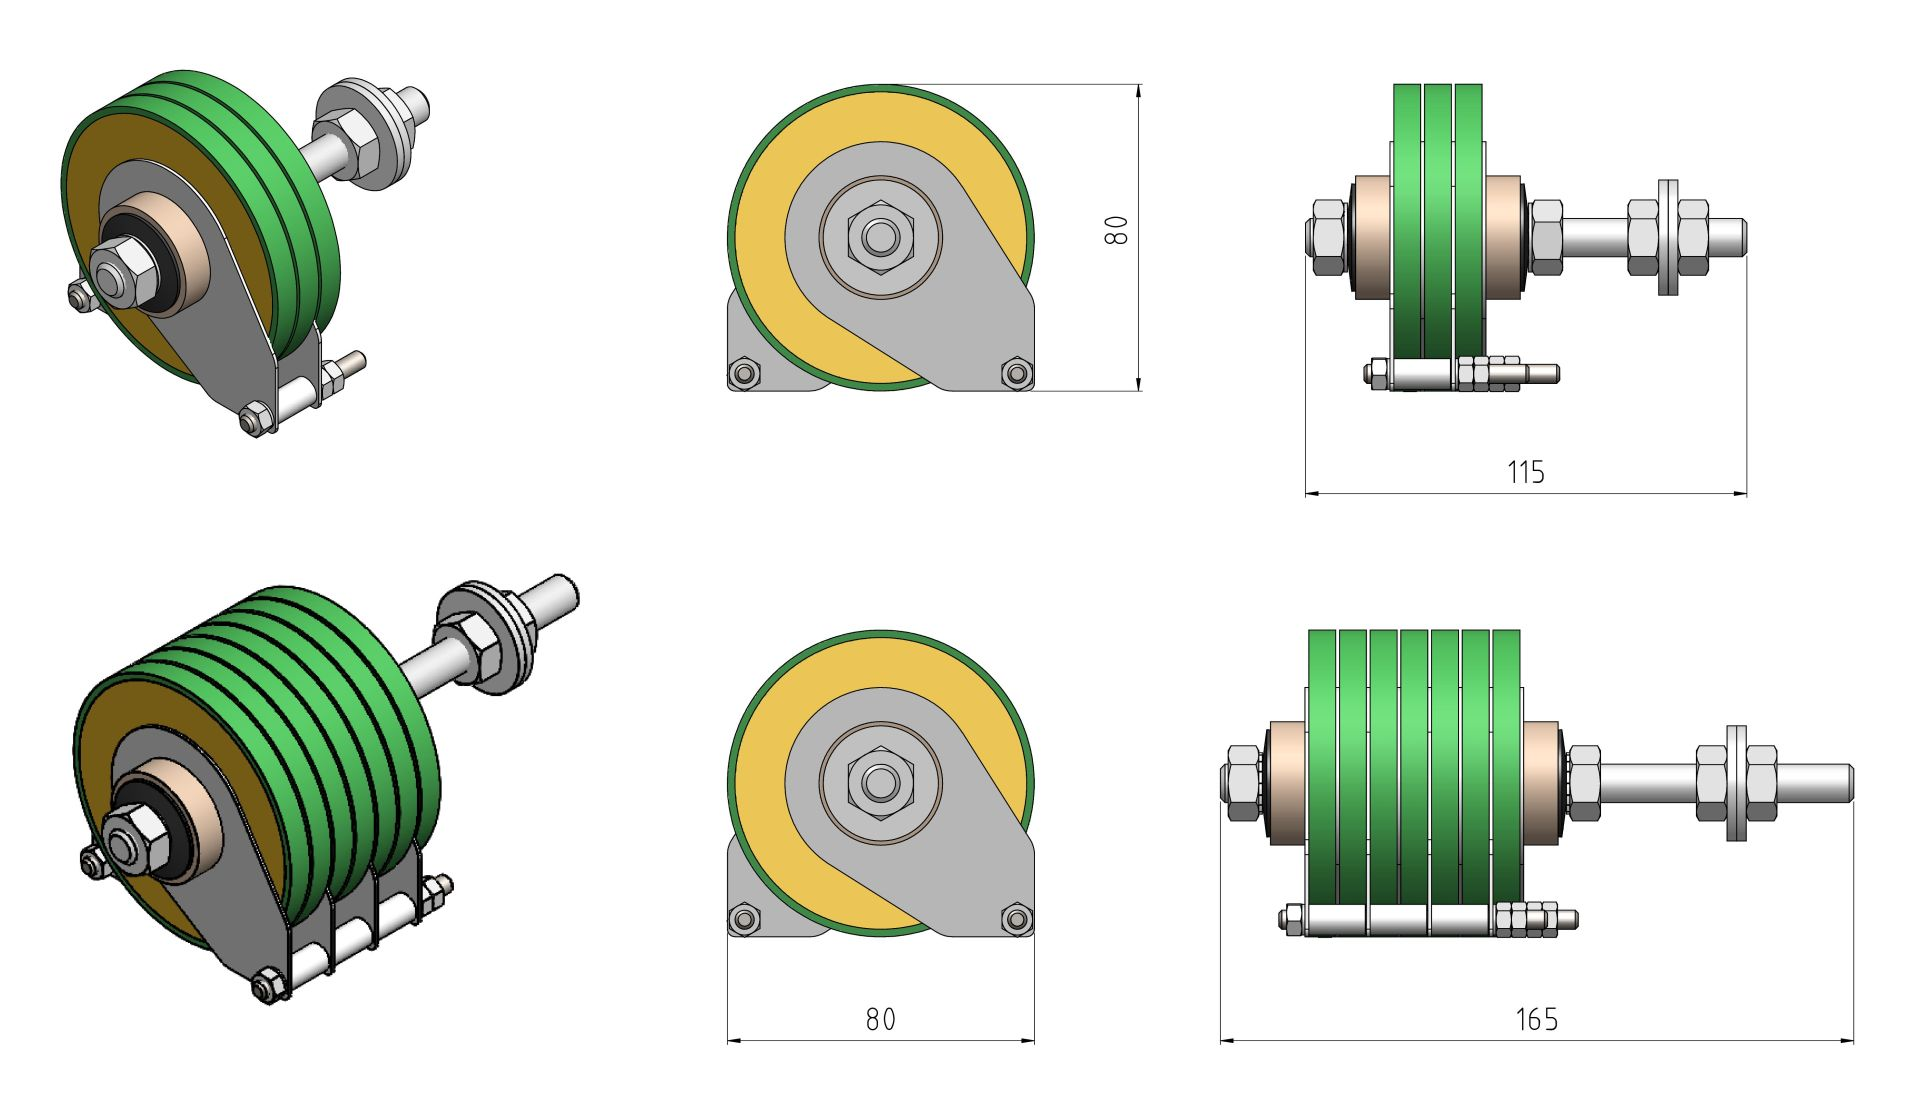 80mm Example Drawings of Protection for Lifting Magnets